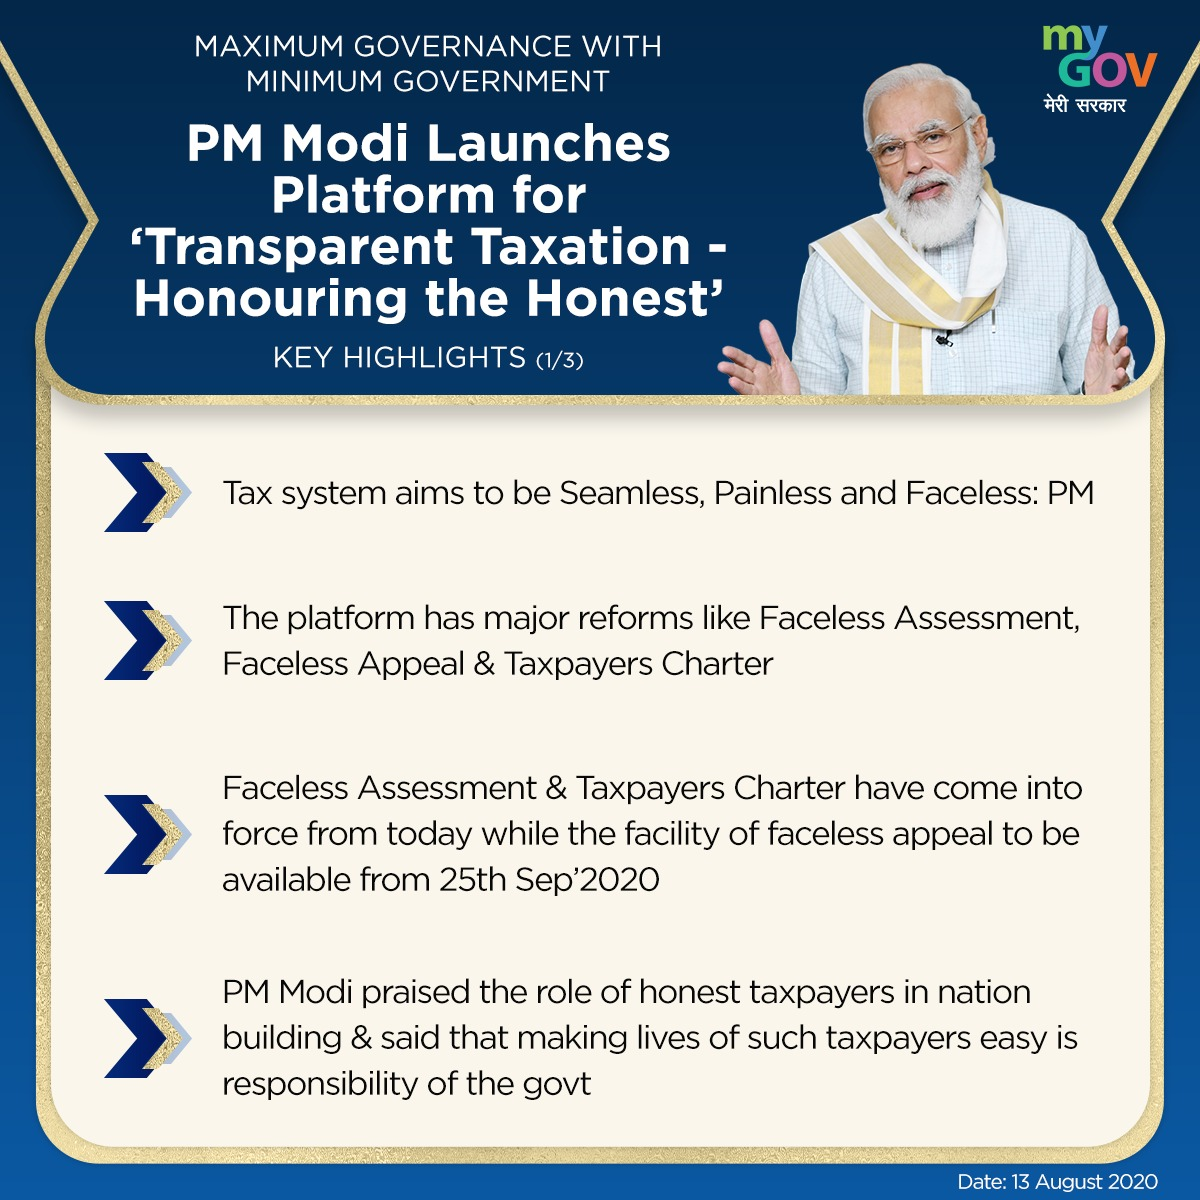 Here are the key highlights of PM @narendramodi's address at the launch of 'Transparent Taxation - Honoring the Honest' platform. #HonoringTheHonest https://t.co/JksAaIxNA1